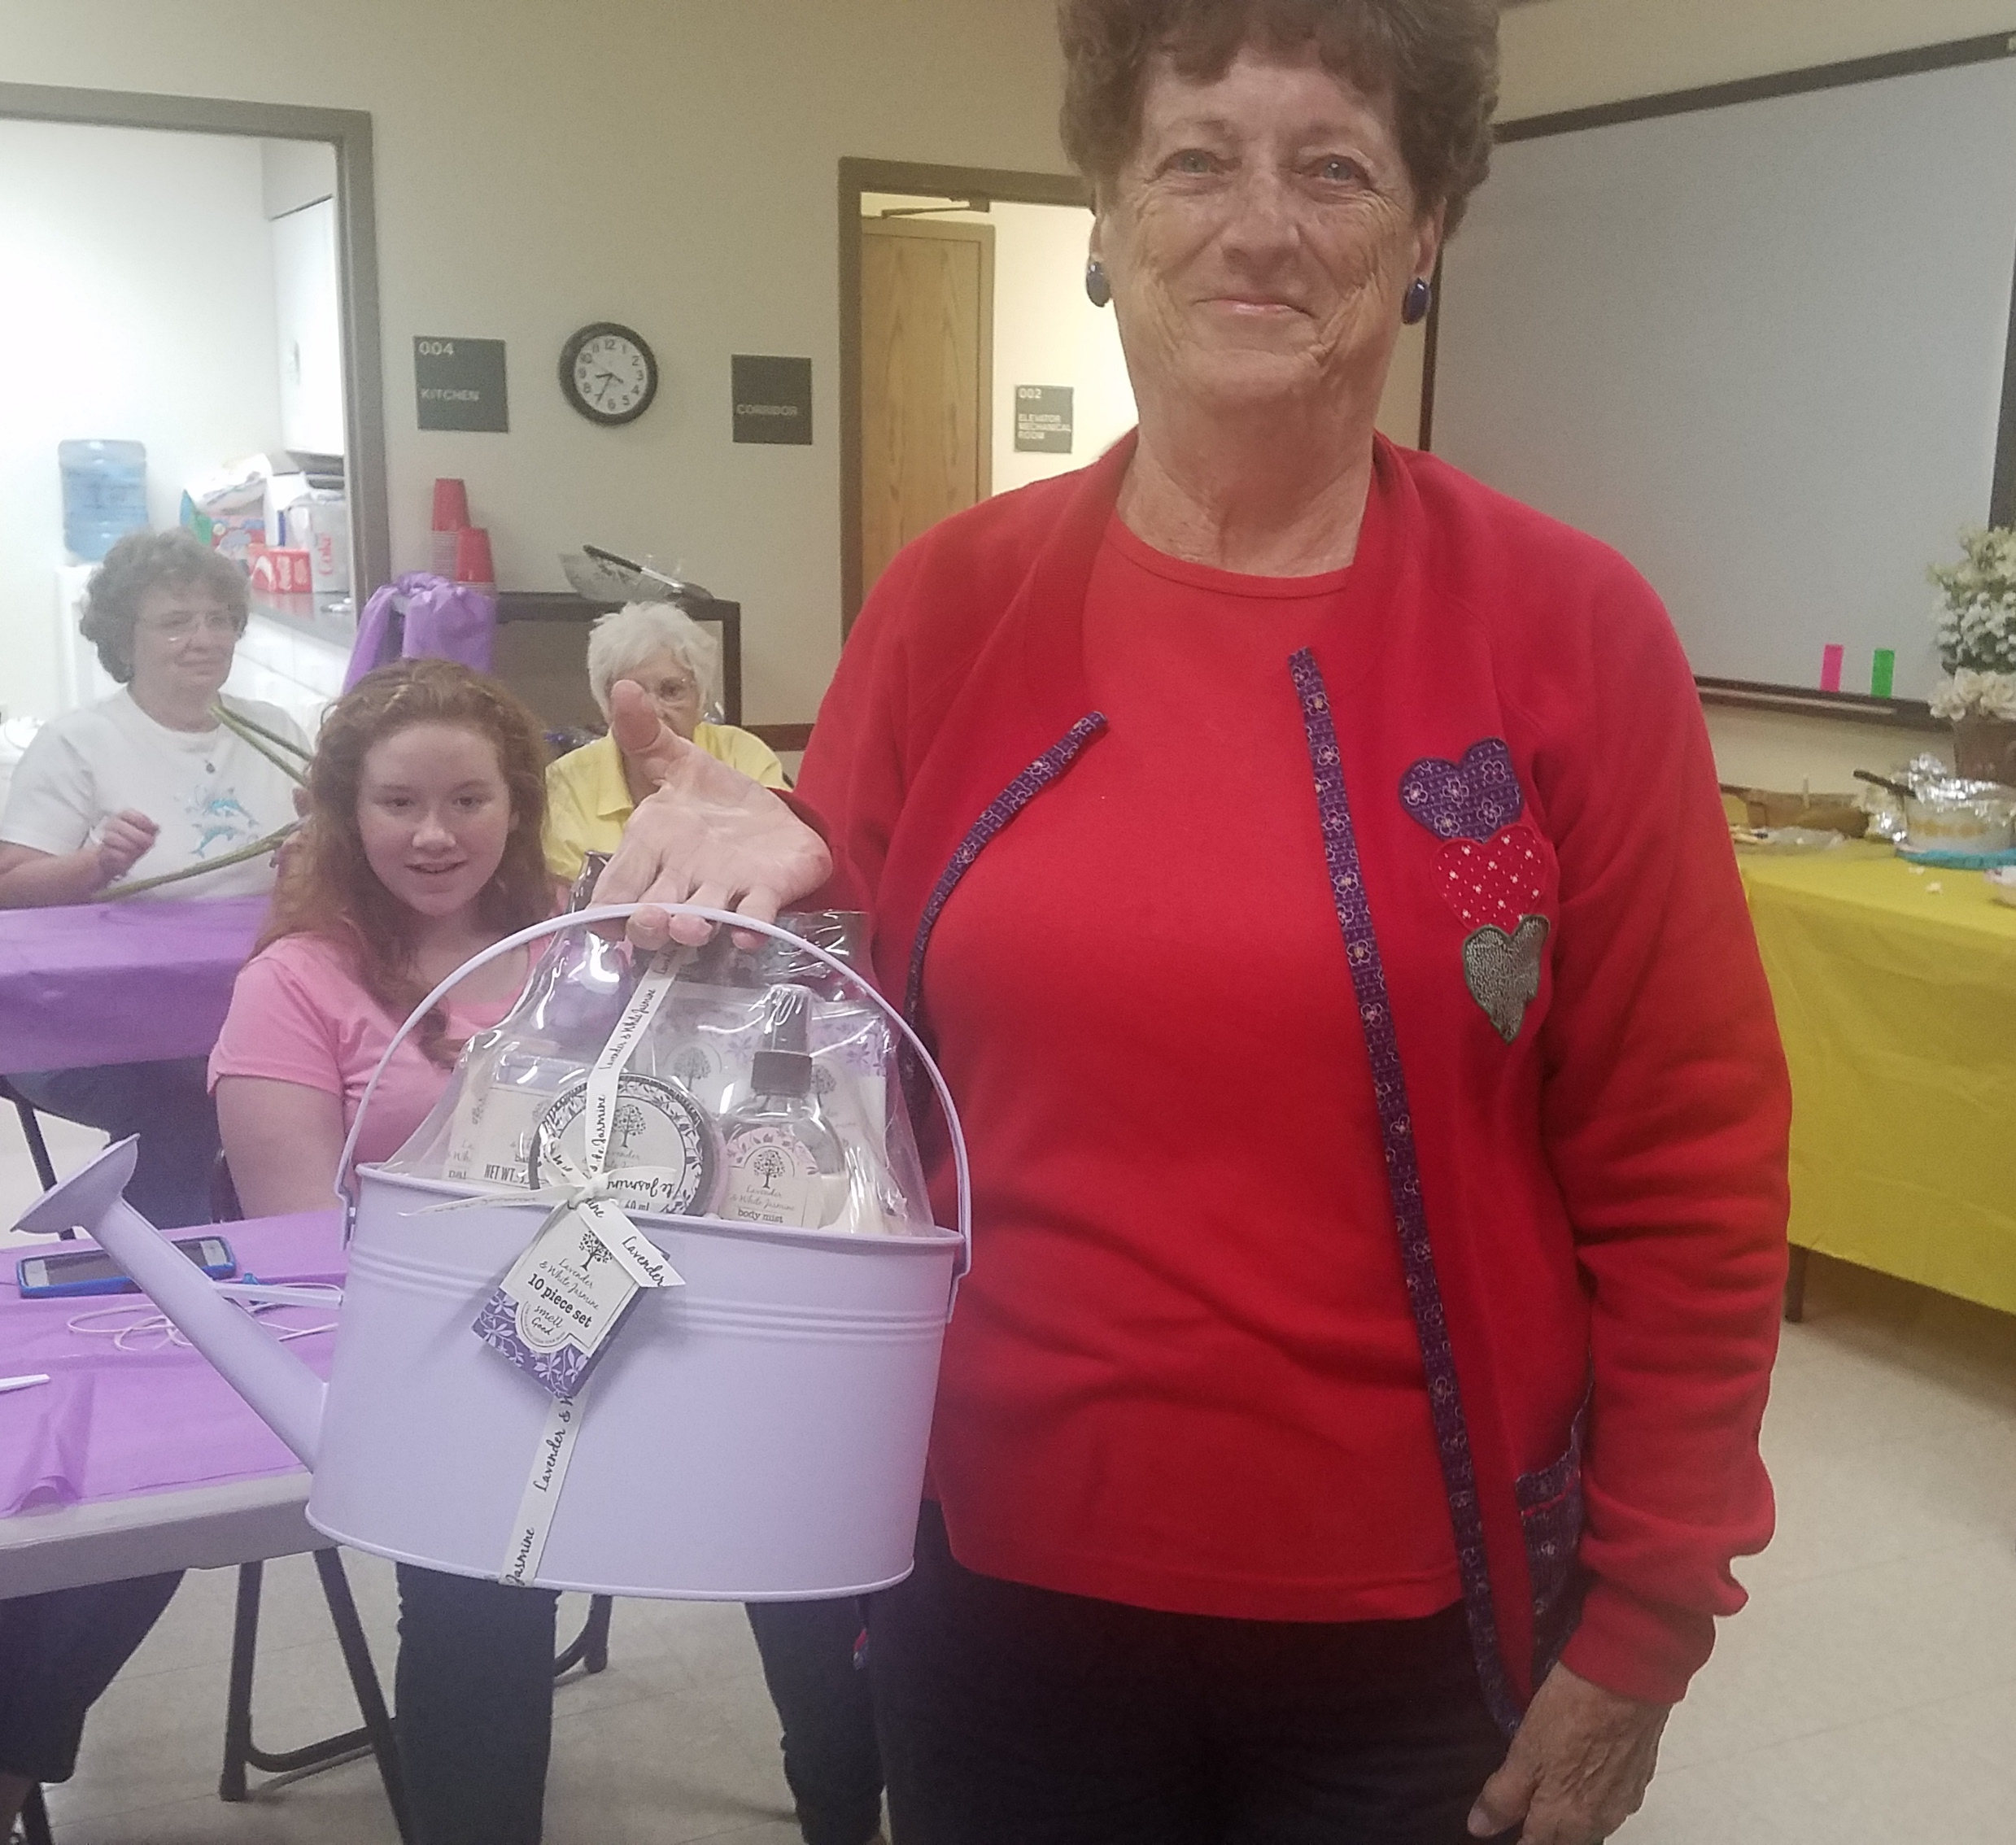 Congratulations to Patsy Smith for winning one of the door prizes at the June Ladies Night Out event.